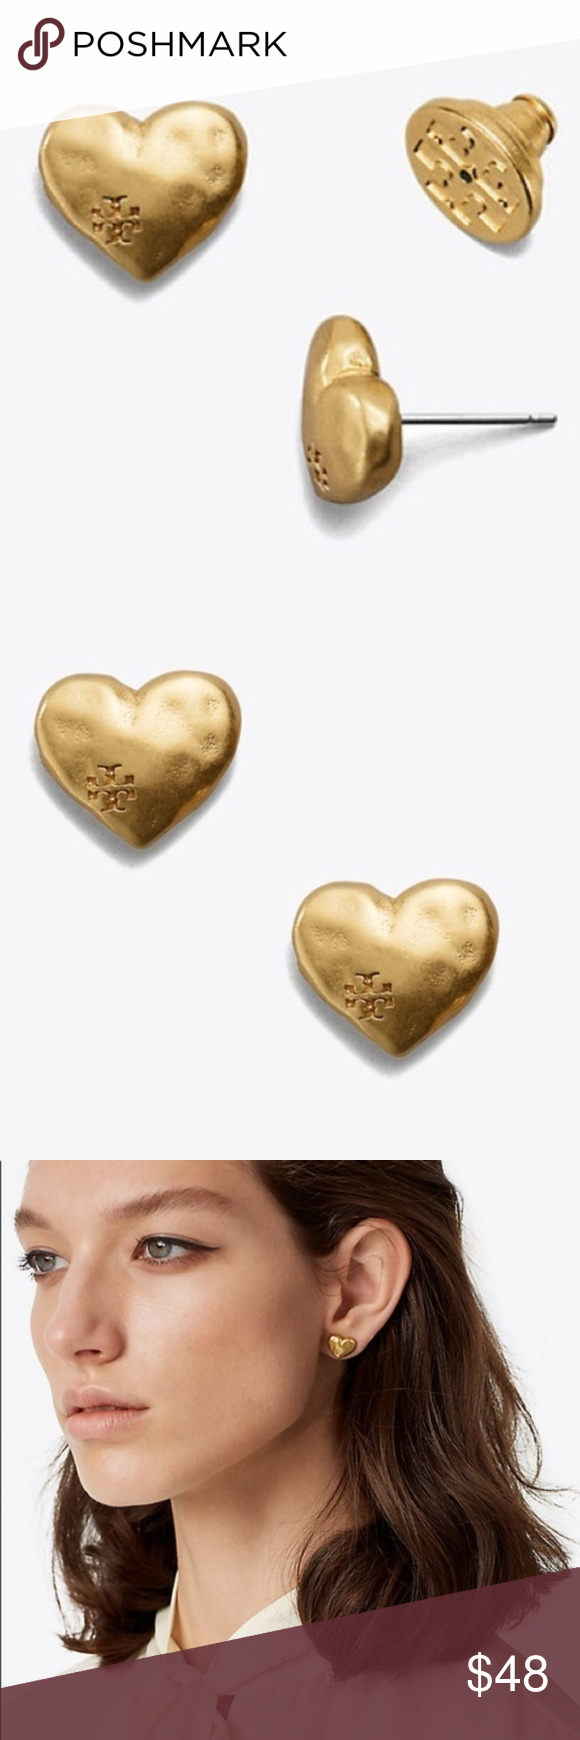 fbda4fa91 Comes with Tory Burch pouch. Show your love with our Heart Stud Earring.  Great for gifting, the style is cast in brass with a vintage-gold ...